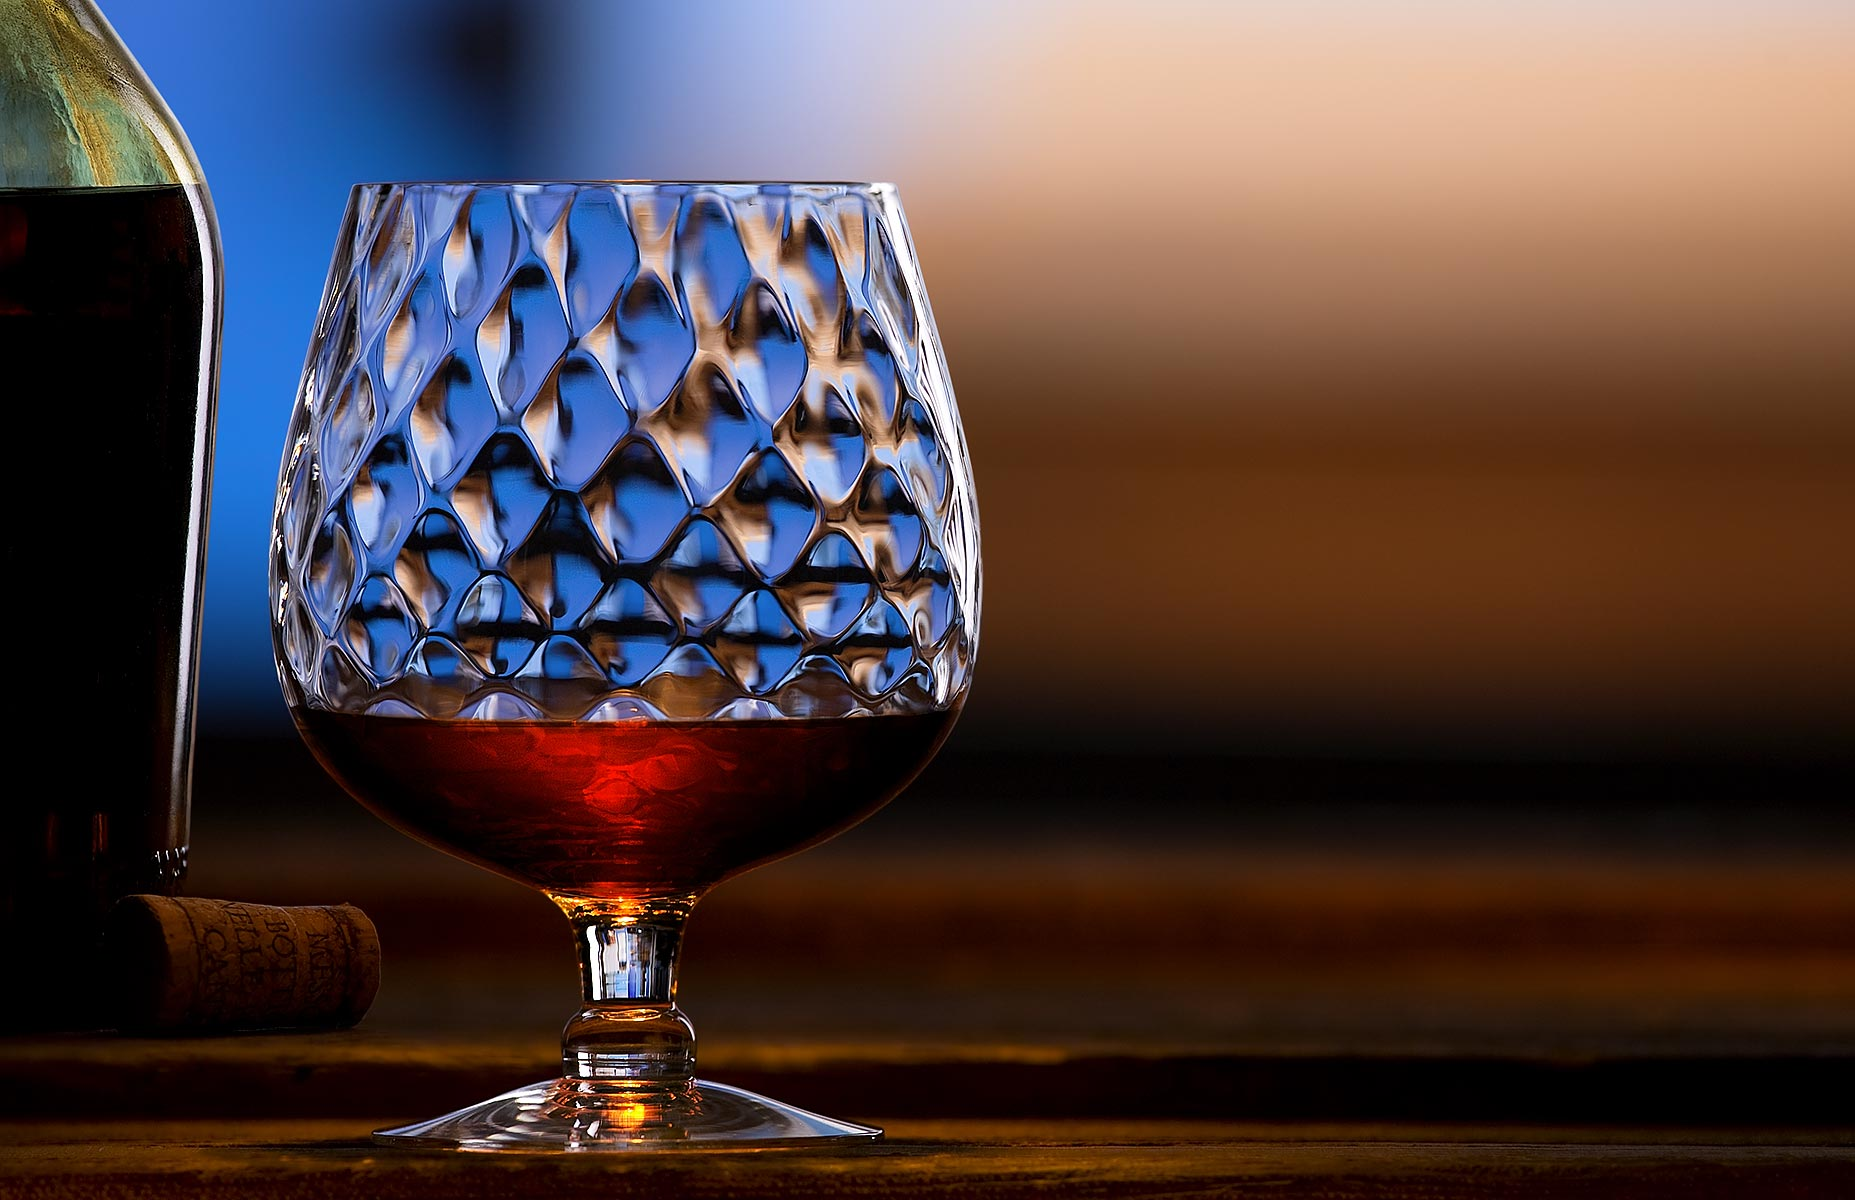 Camera is at 0º and the lighting is frome back and right of frame in this landscape aspect product and beverage image. The single snifter is partially filled with a hint of the bottle on the left side and a cork stopper is placed between all composed on a weathered wood bar top. The soft focus background exhibits a desireable bokeh effect in its rich brown and blue hues.